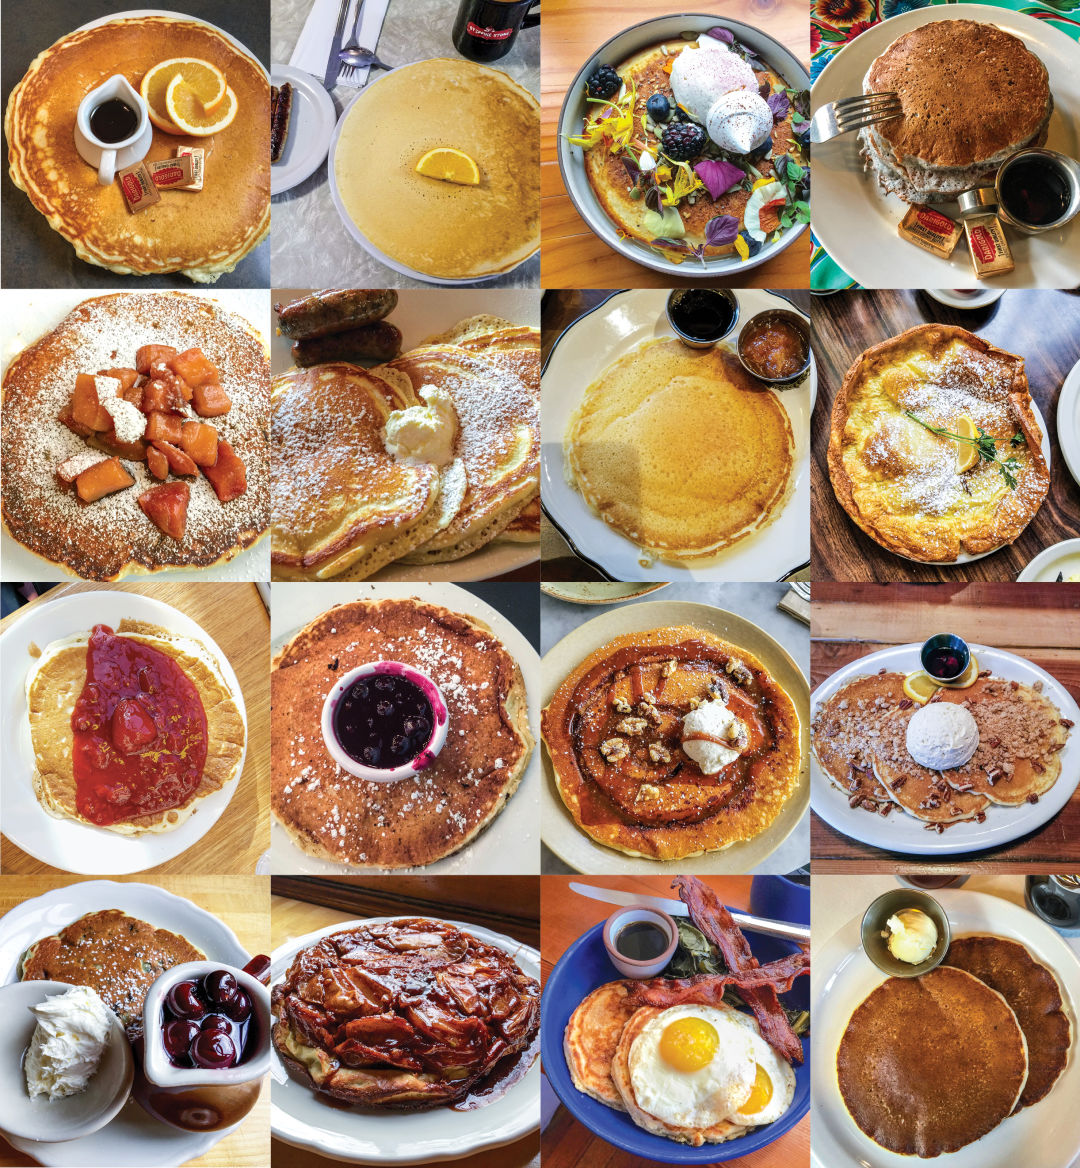 0118 eat drink pancake quest collage ykjvuq